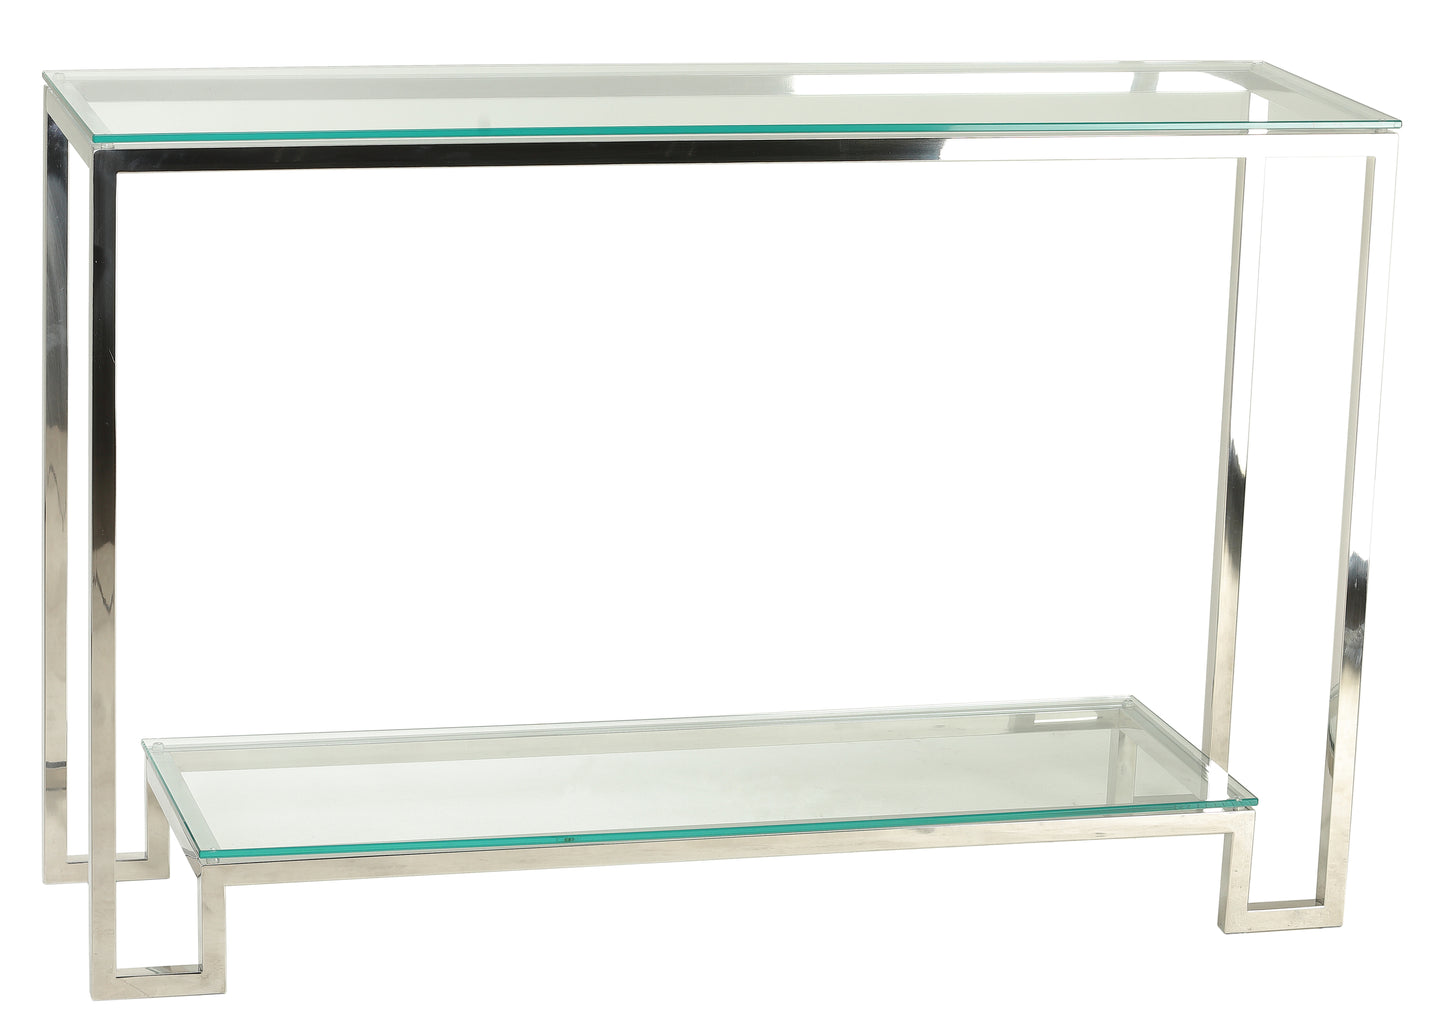 Cortesi Home Reef Contemporary 2 Shelf Glass Console Table in Stainless Steel Finish, Clear Glass